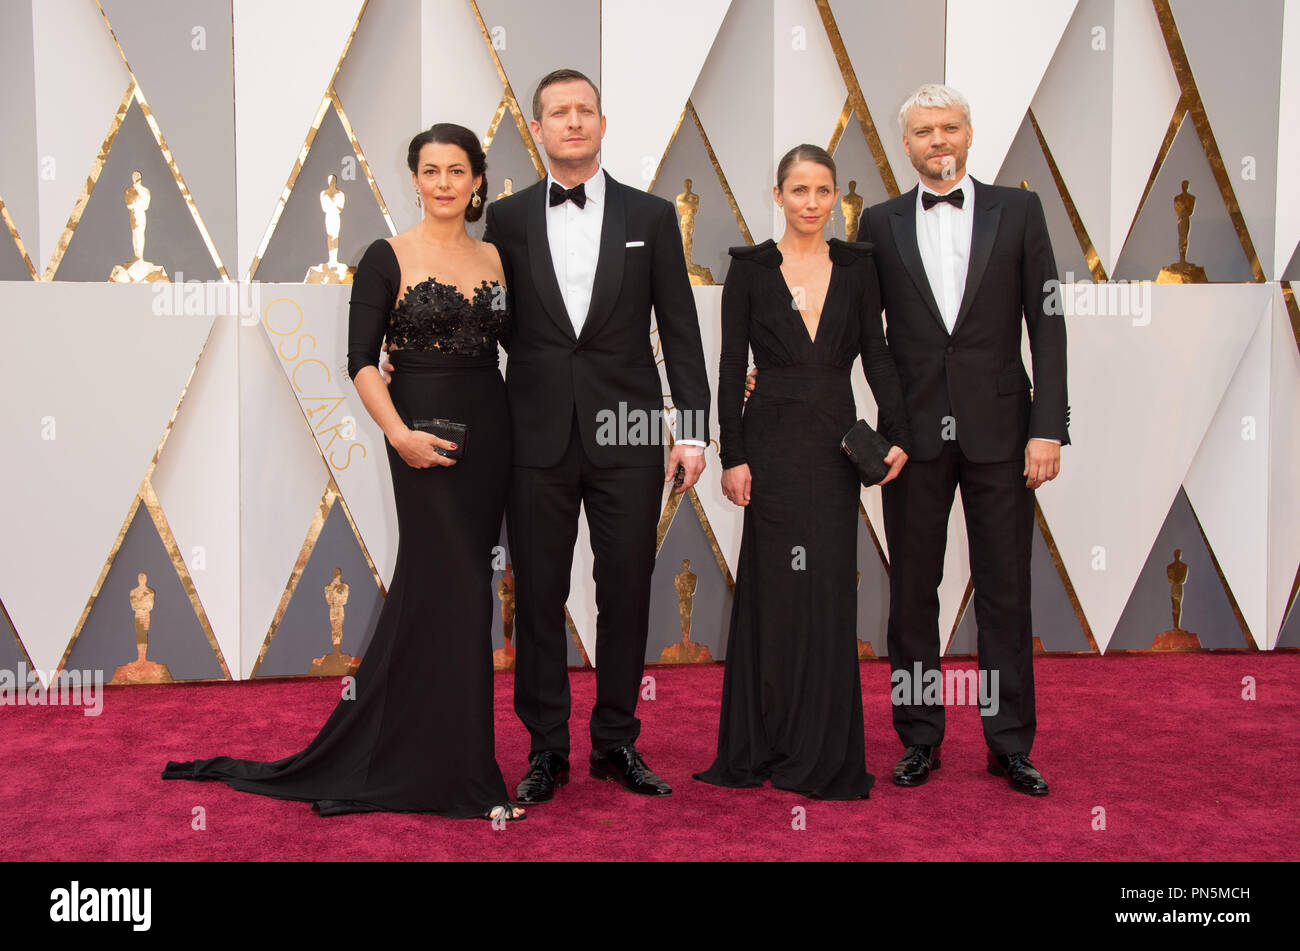 Oscar®-nominee, Tobias Lindholm (2nd from left), and guests arrive at The 88th Oscars® at the Dolby® Theatre in Hollywood, CA on Sunday, February 28, 2016.  File Reference # 32854_022THA  For Editorial Use Only -  All Rights Reserved - Stock Image